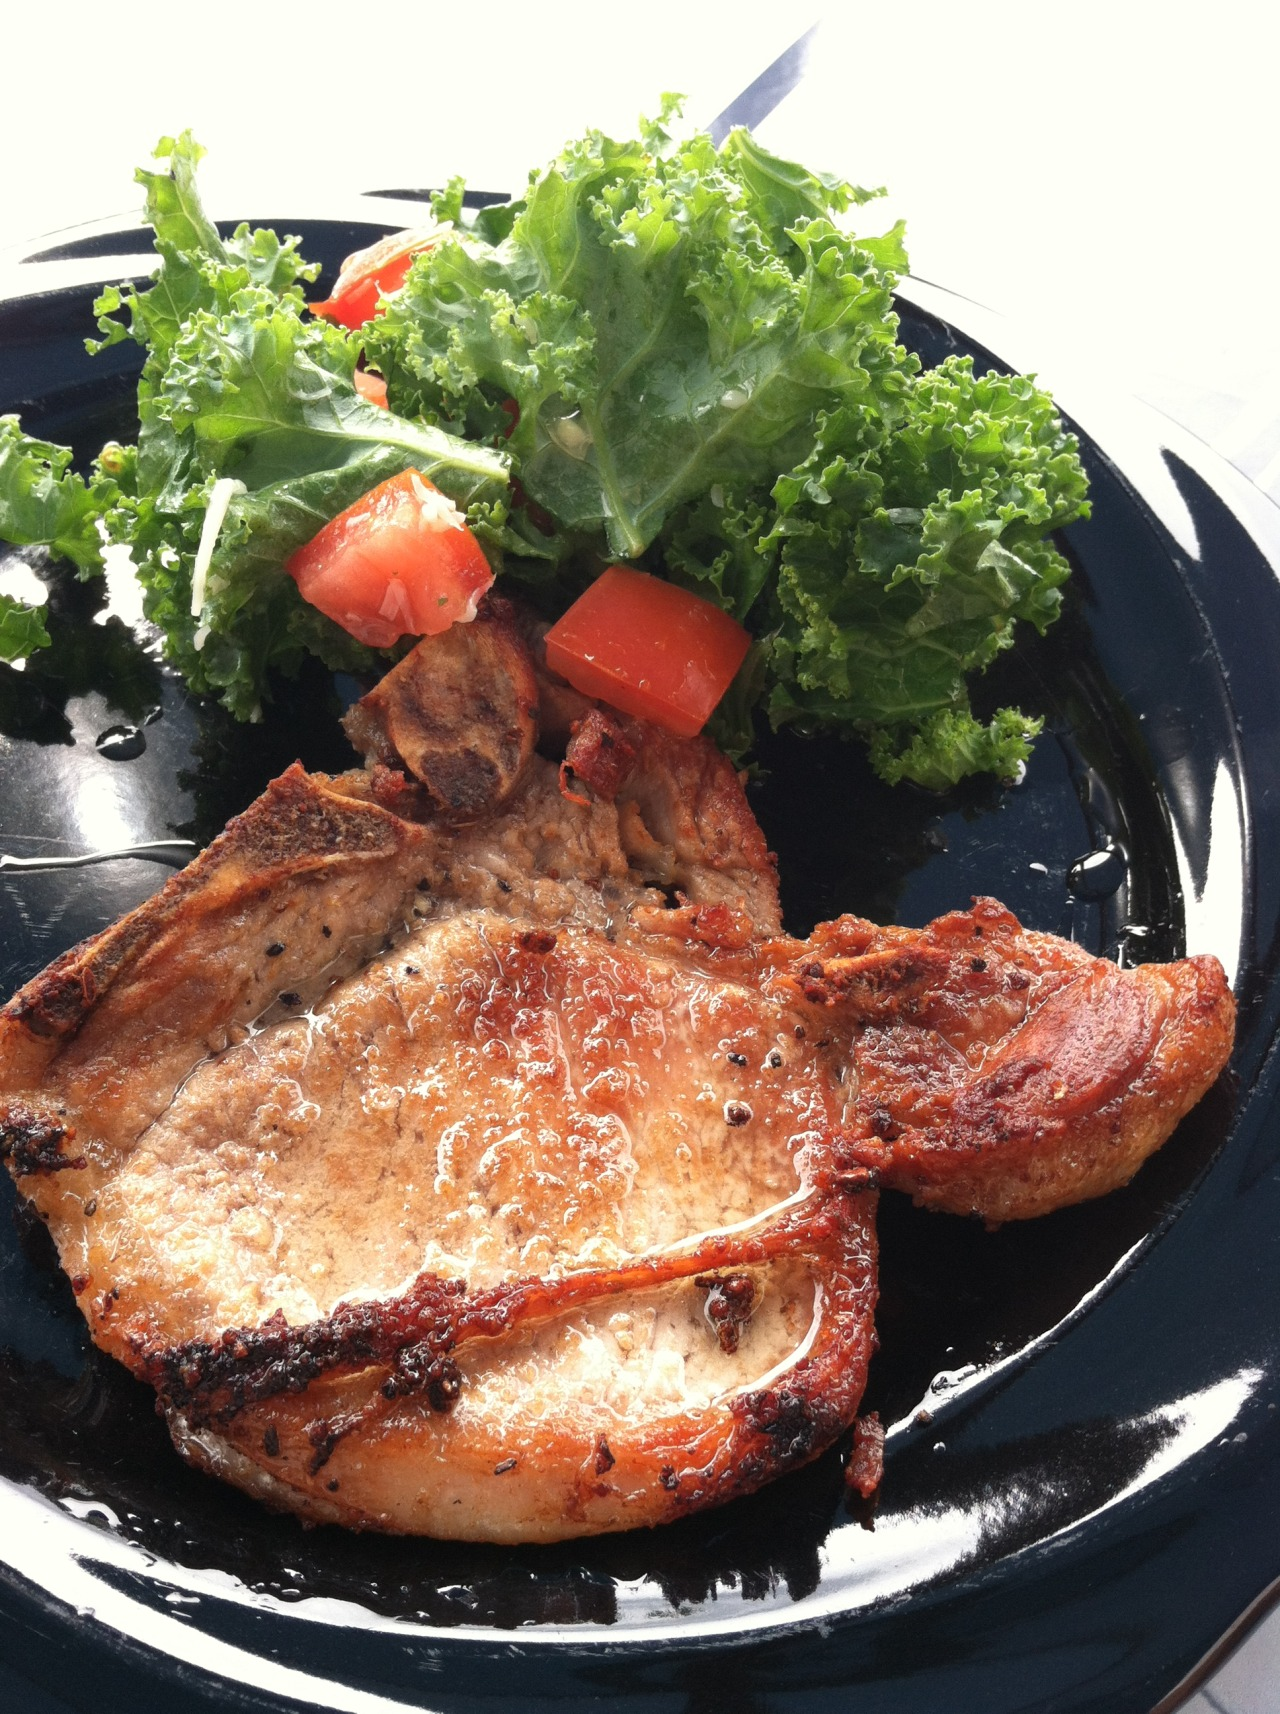 Pork Chop with Kale SaladFilipinos also eat crispy golden browned pork chop.